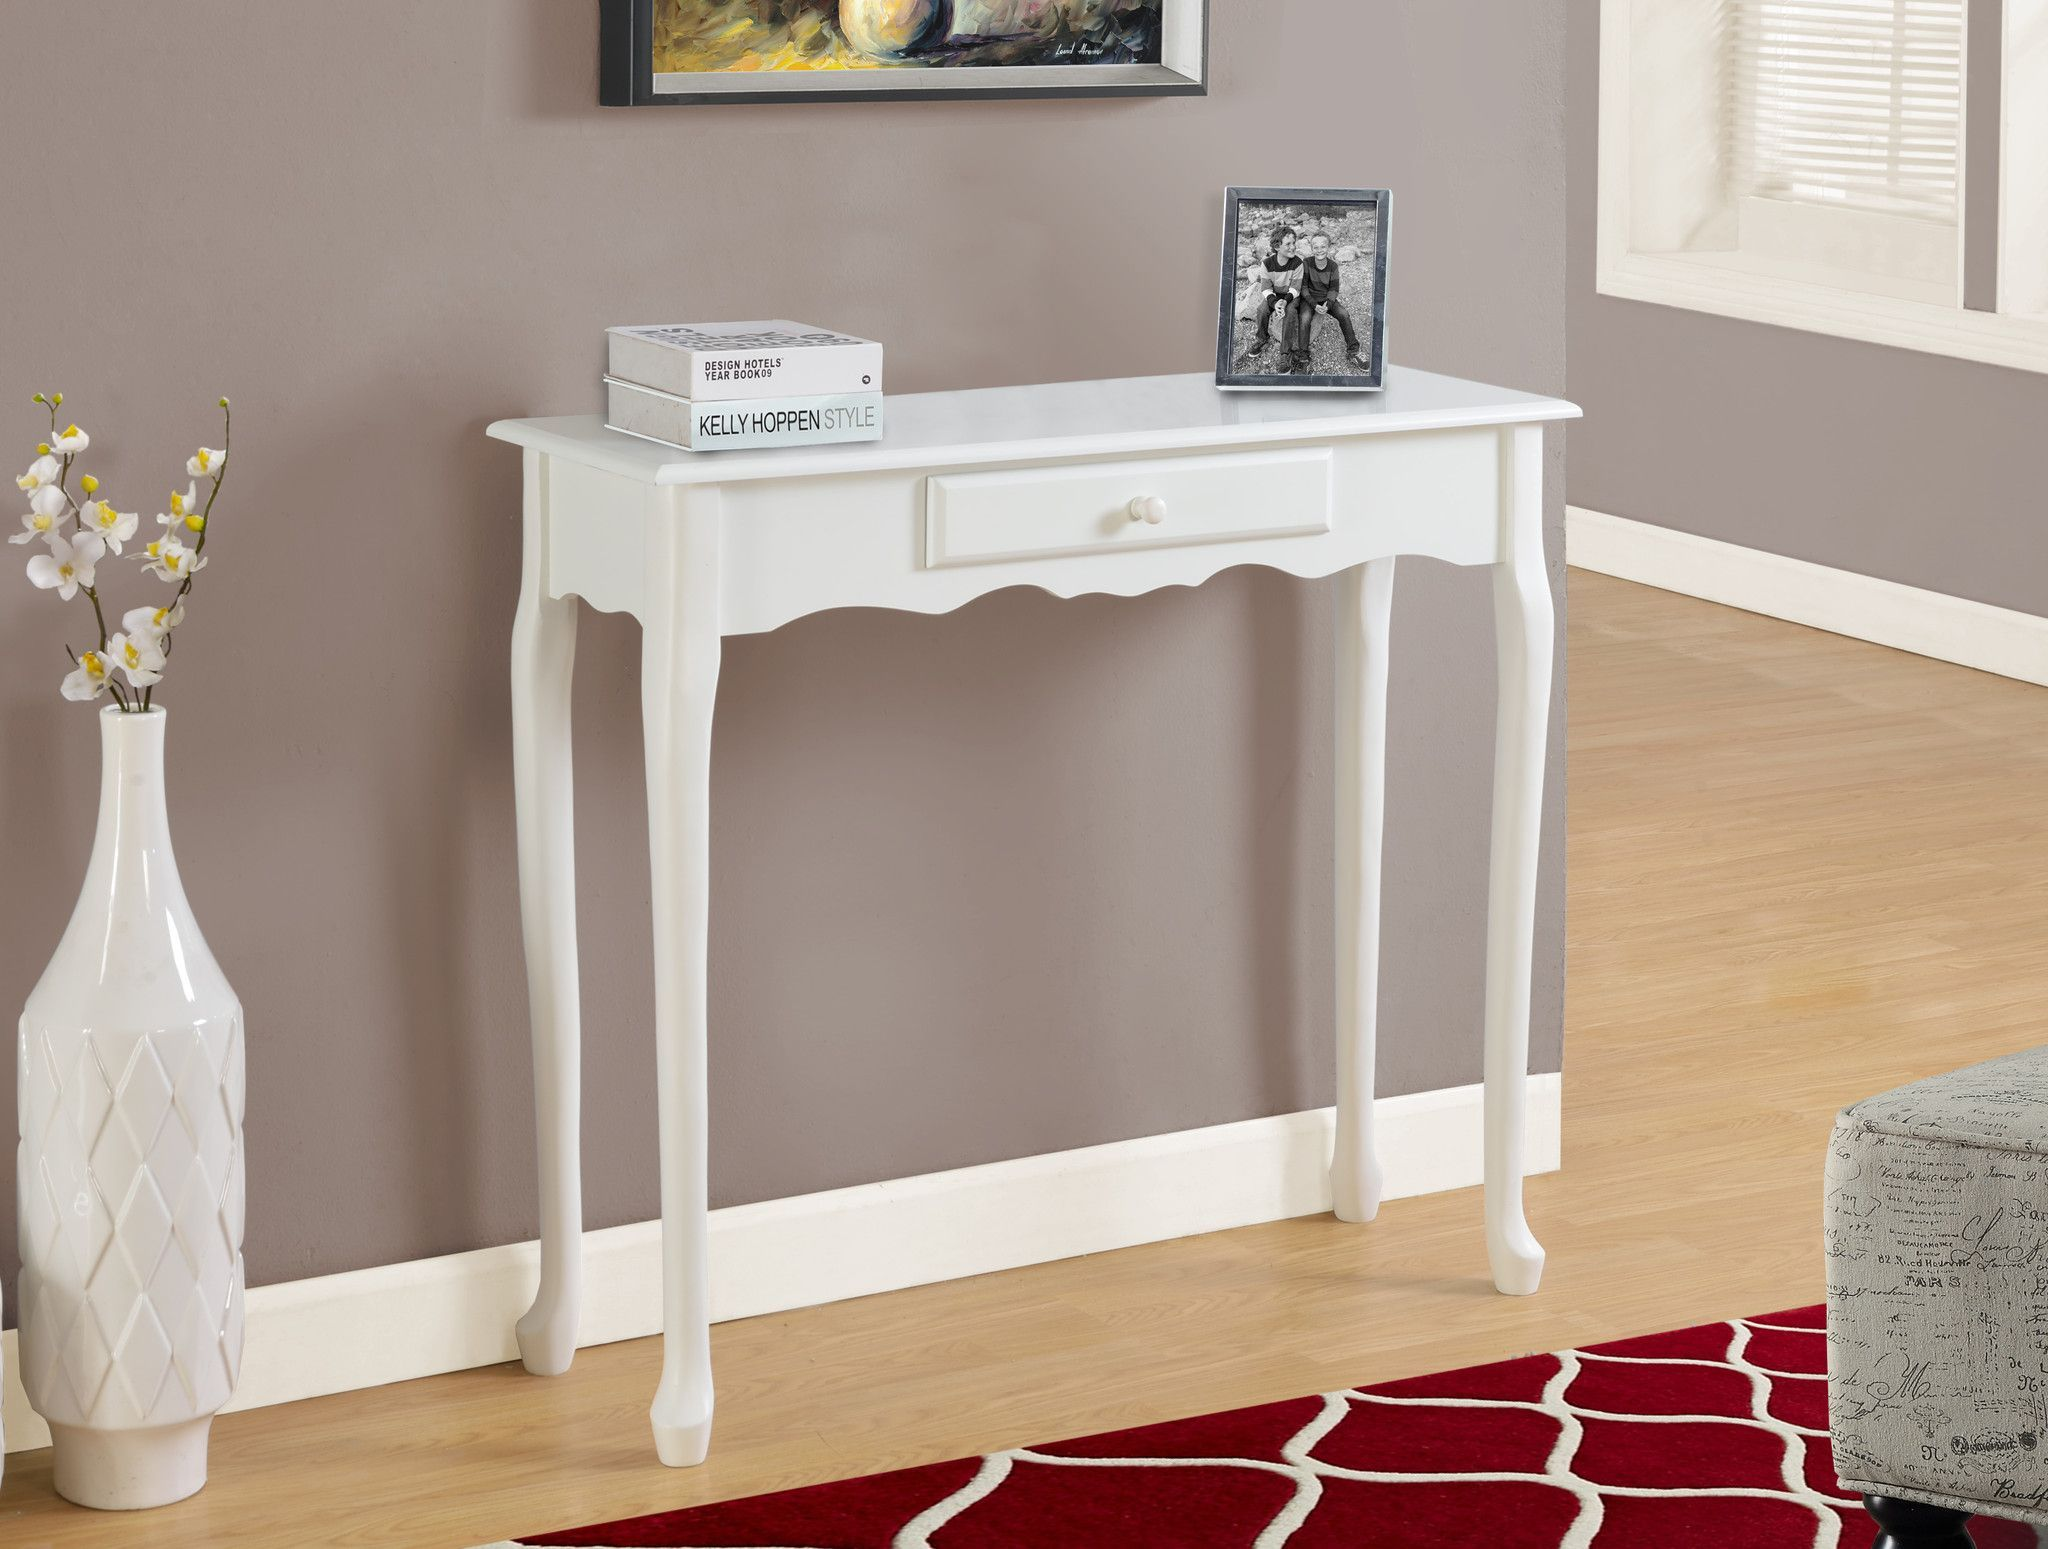 accent table antique white hall console apartment ideas wicker storage baskets garden classic furniture design black pottery barn replica scandinavian navy blue side buffet lamps